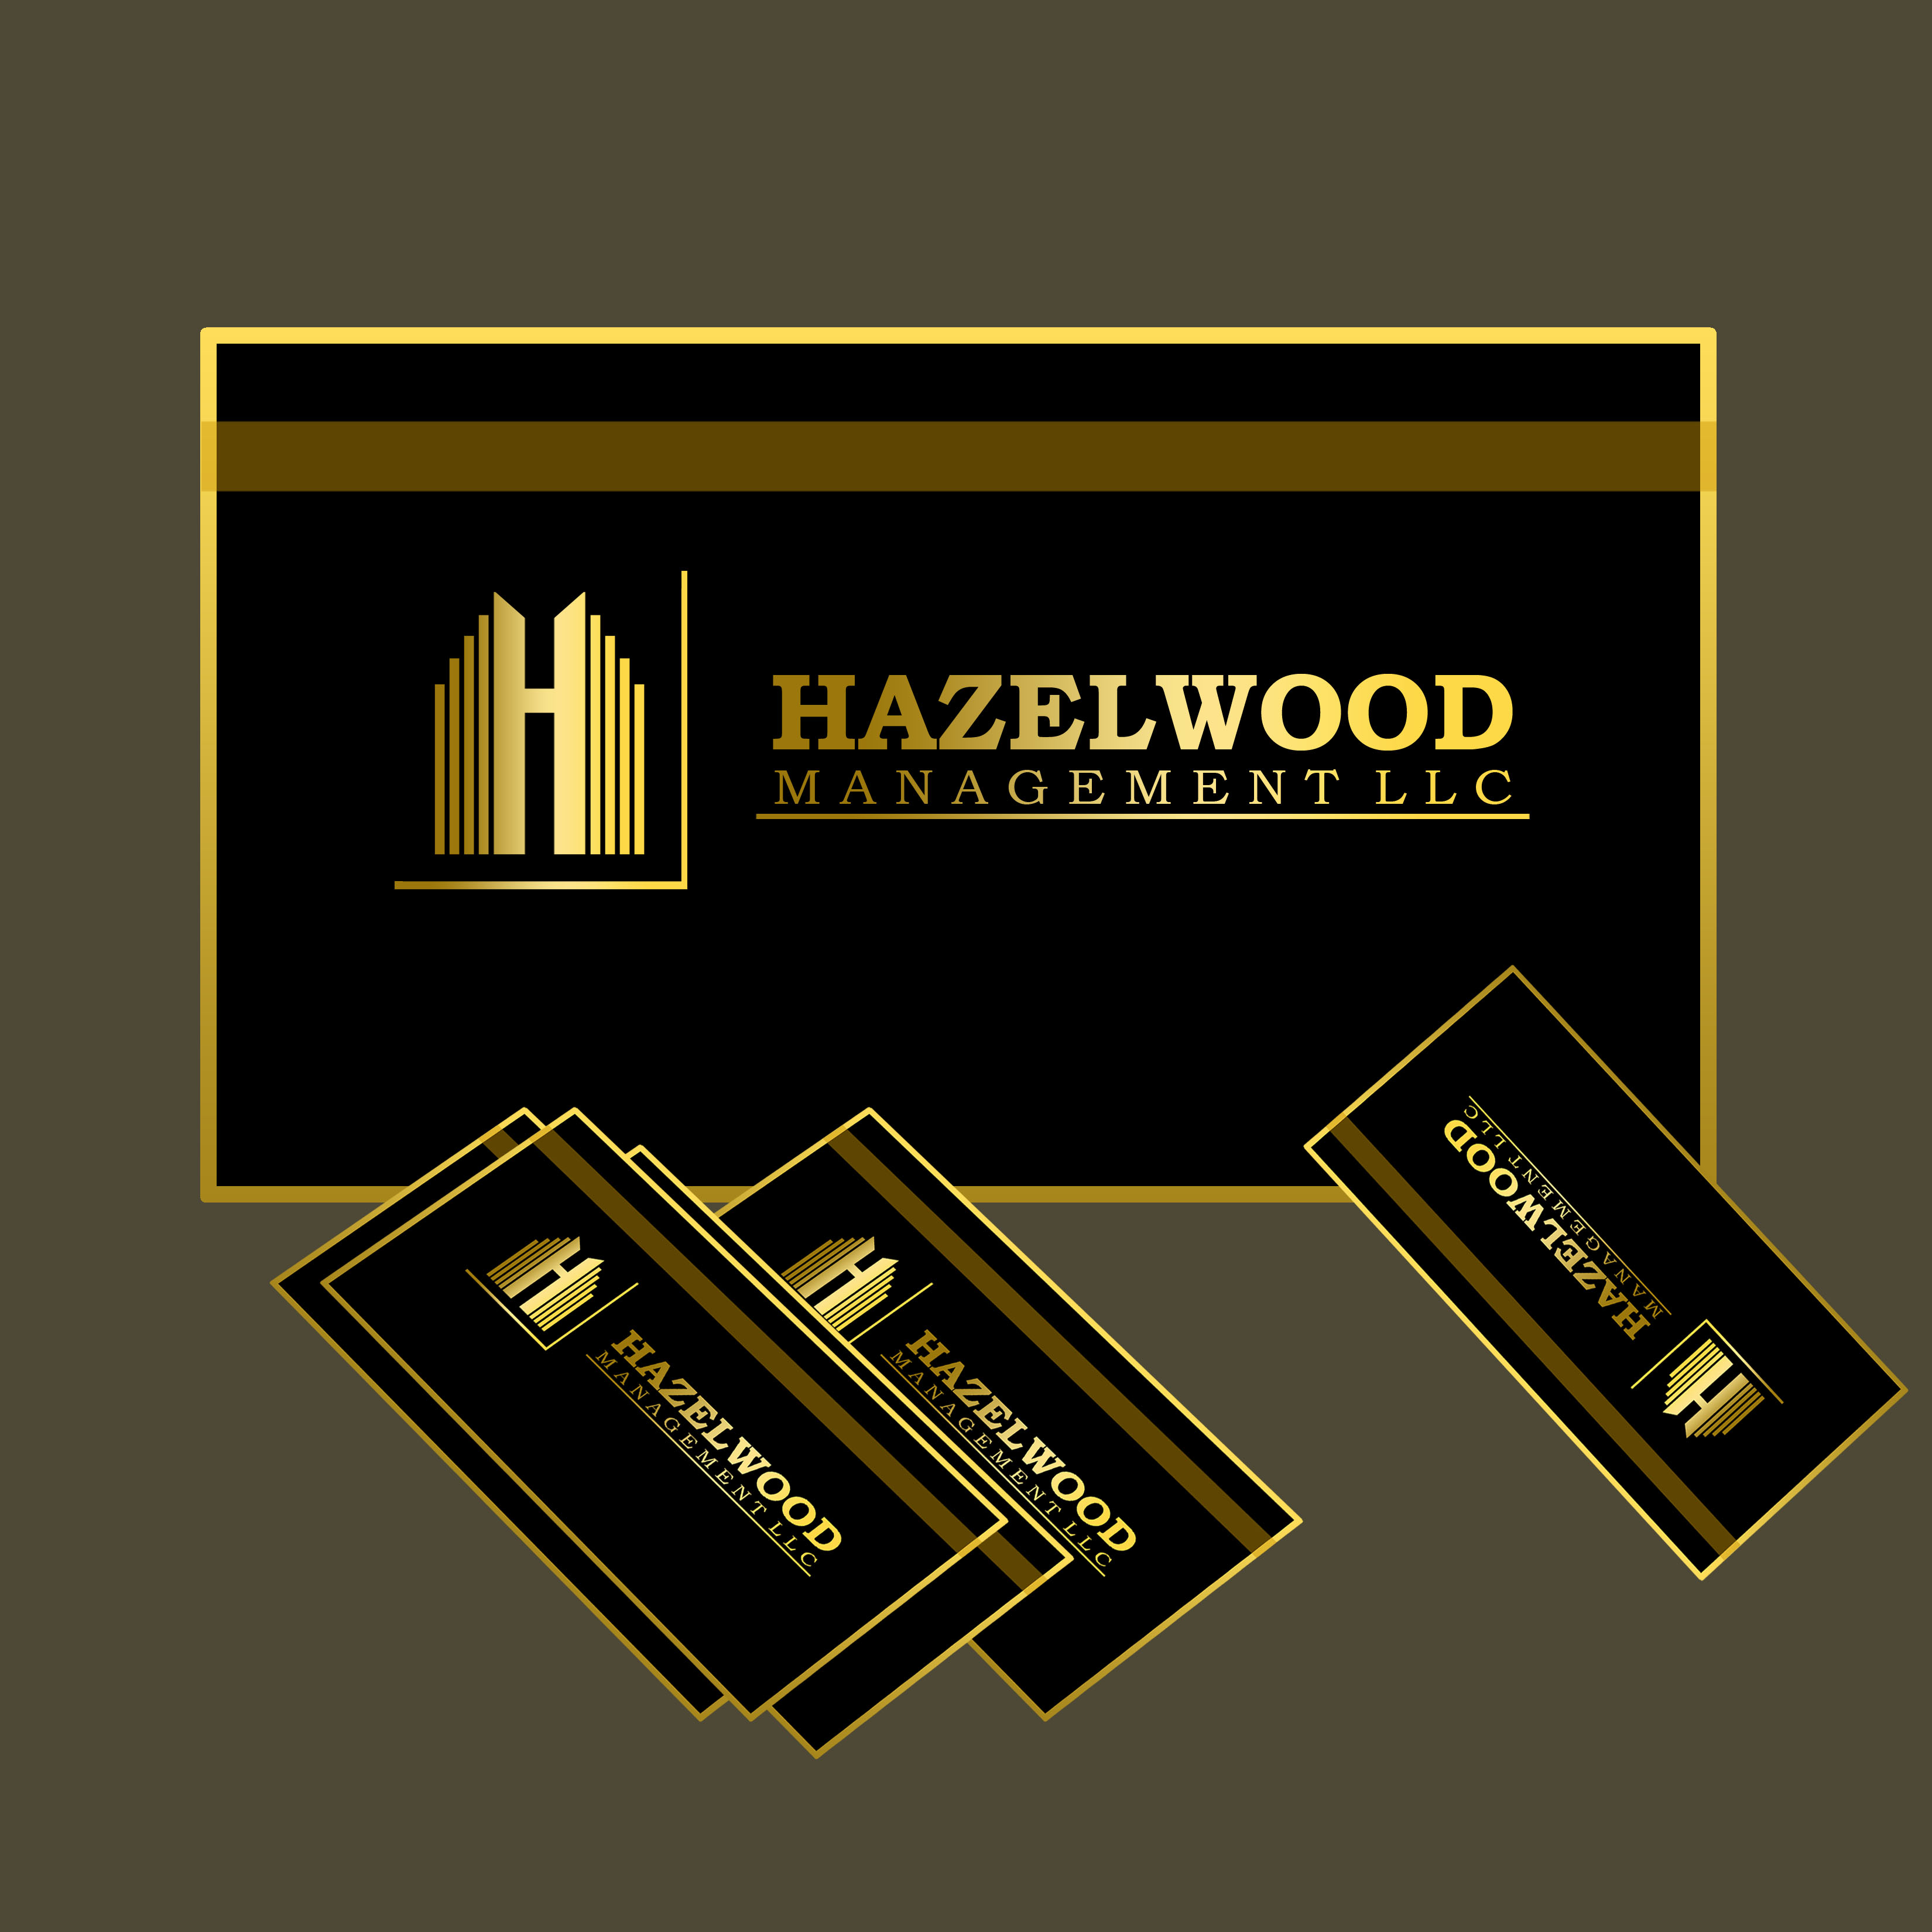 Logo Design by Allan Esclamado - Entry No. 23 in the Logo Design Contest Hazelwood Management LLC Logo Design.